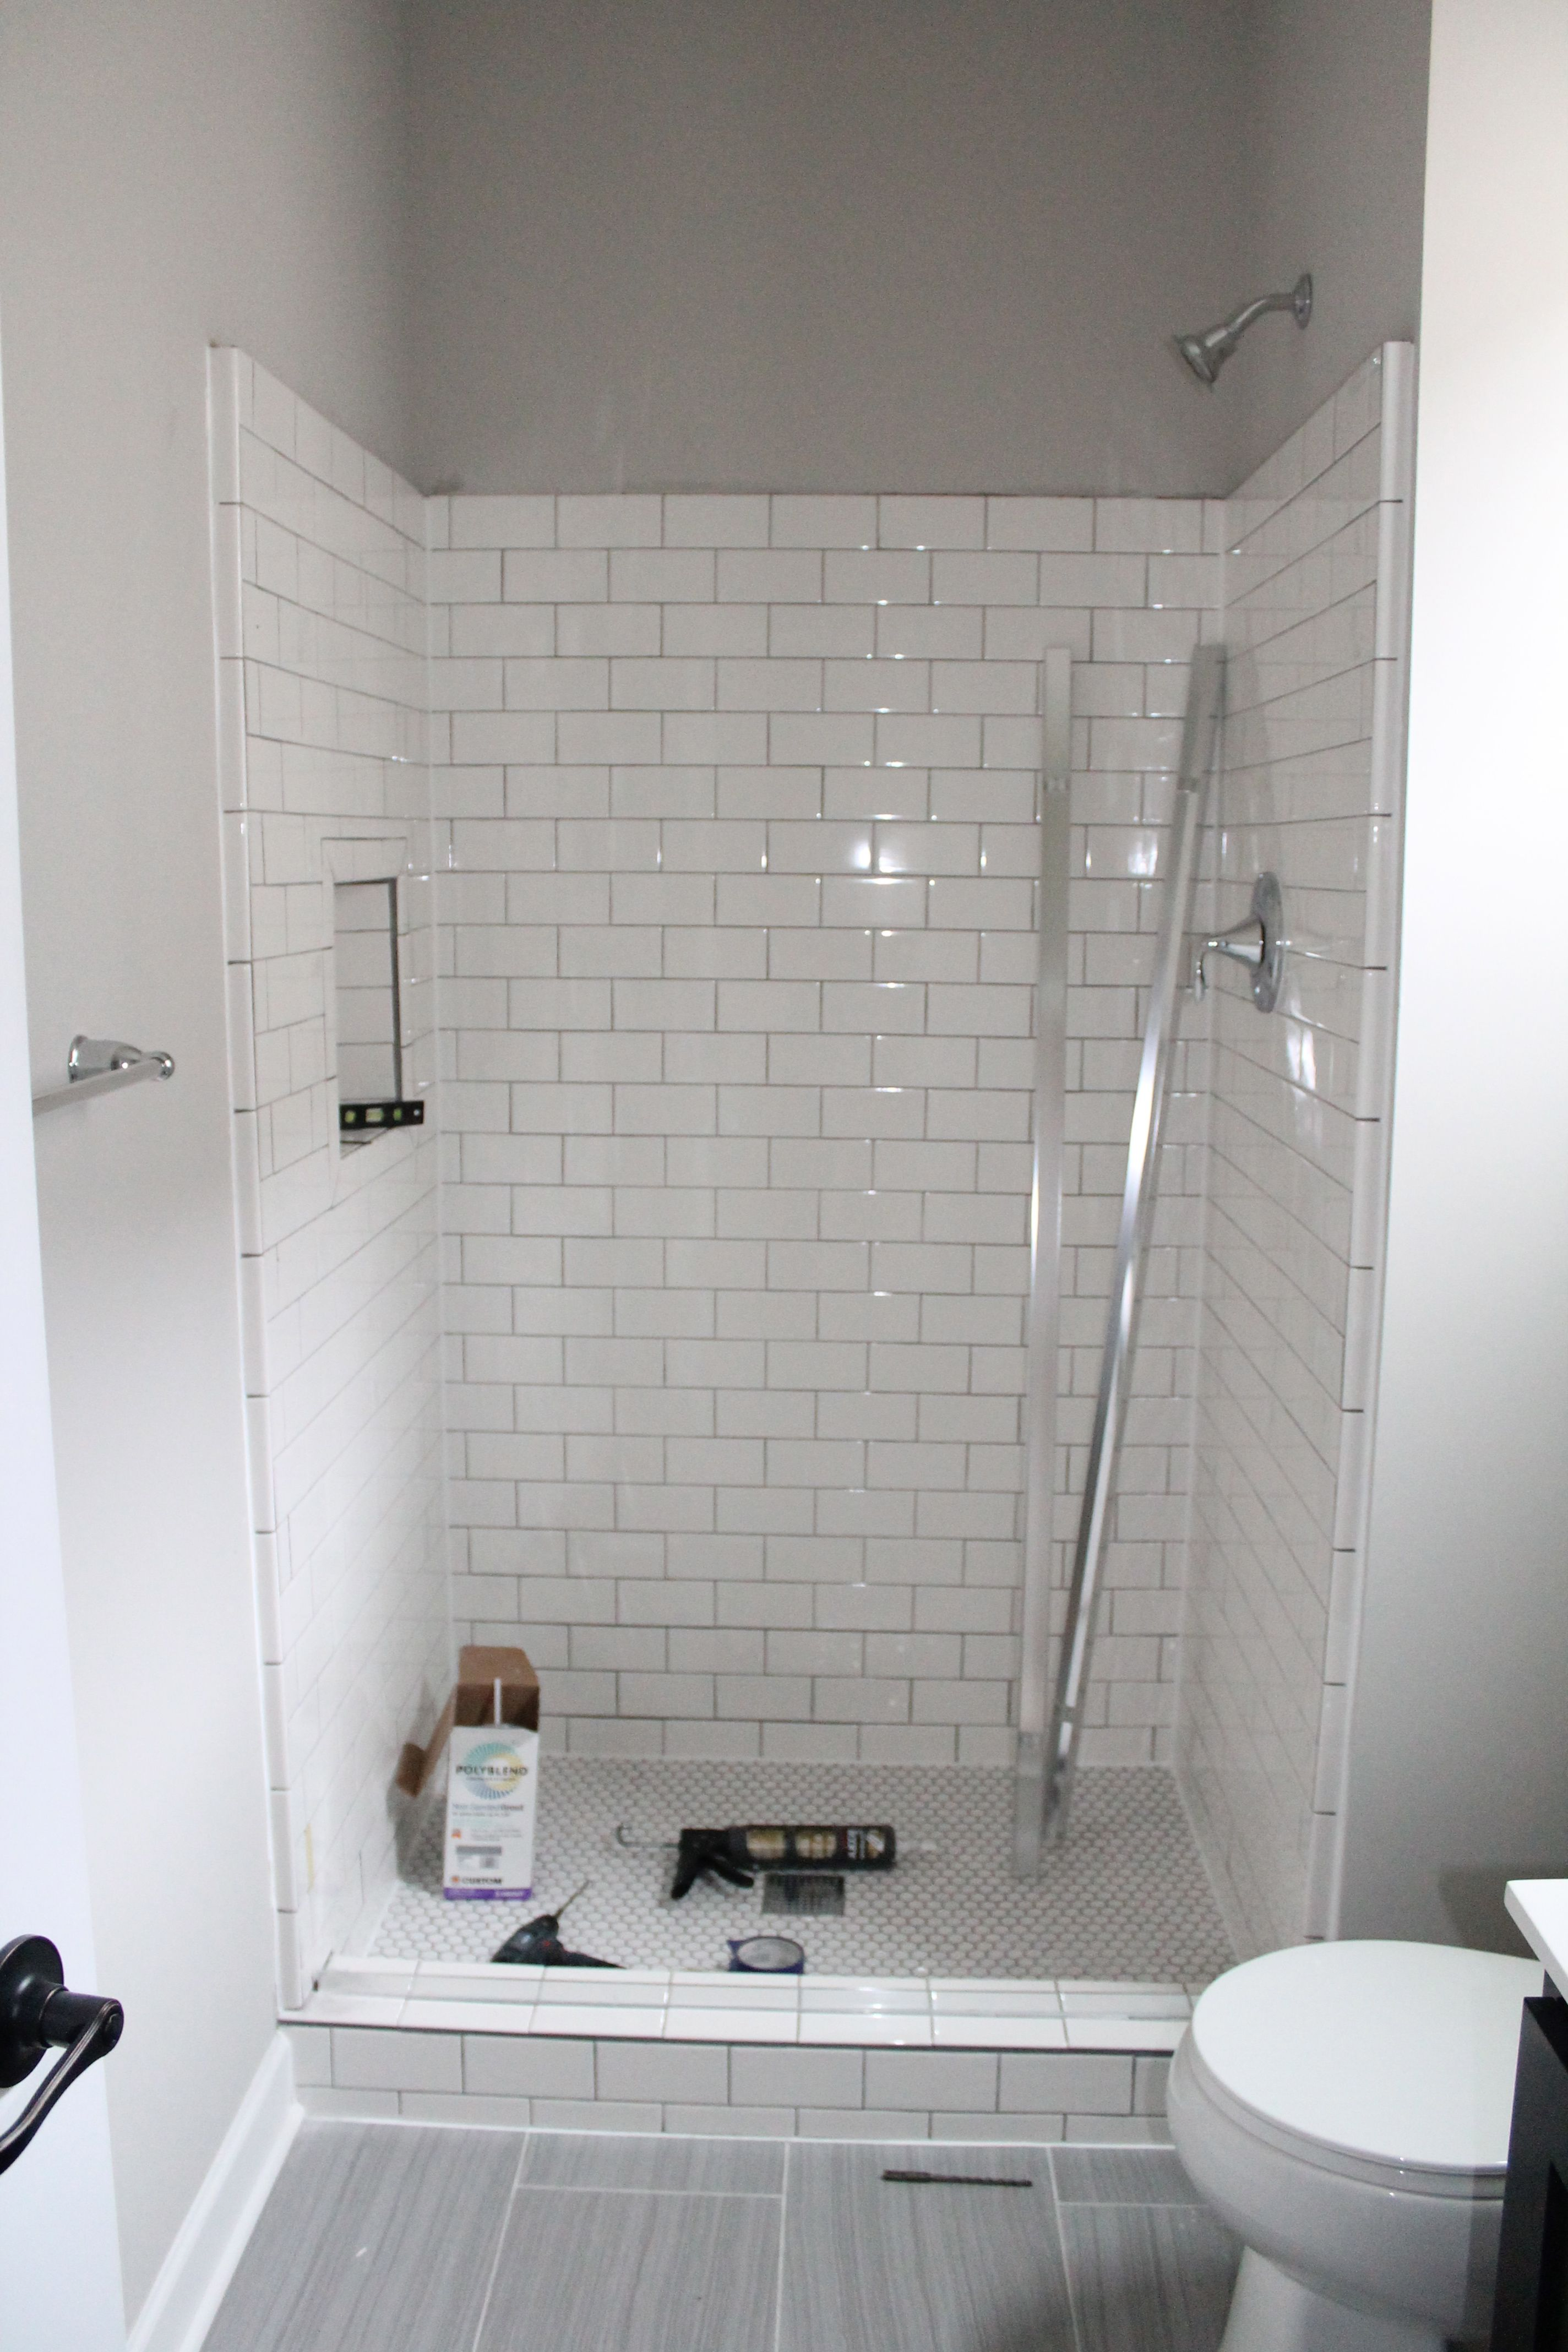 Ordinaire White Subway Tile, Shower Design Inspiration | Construction2style